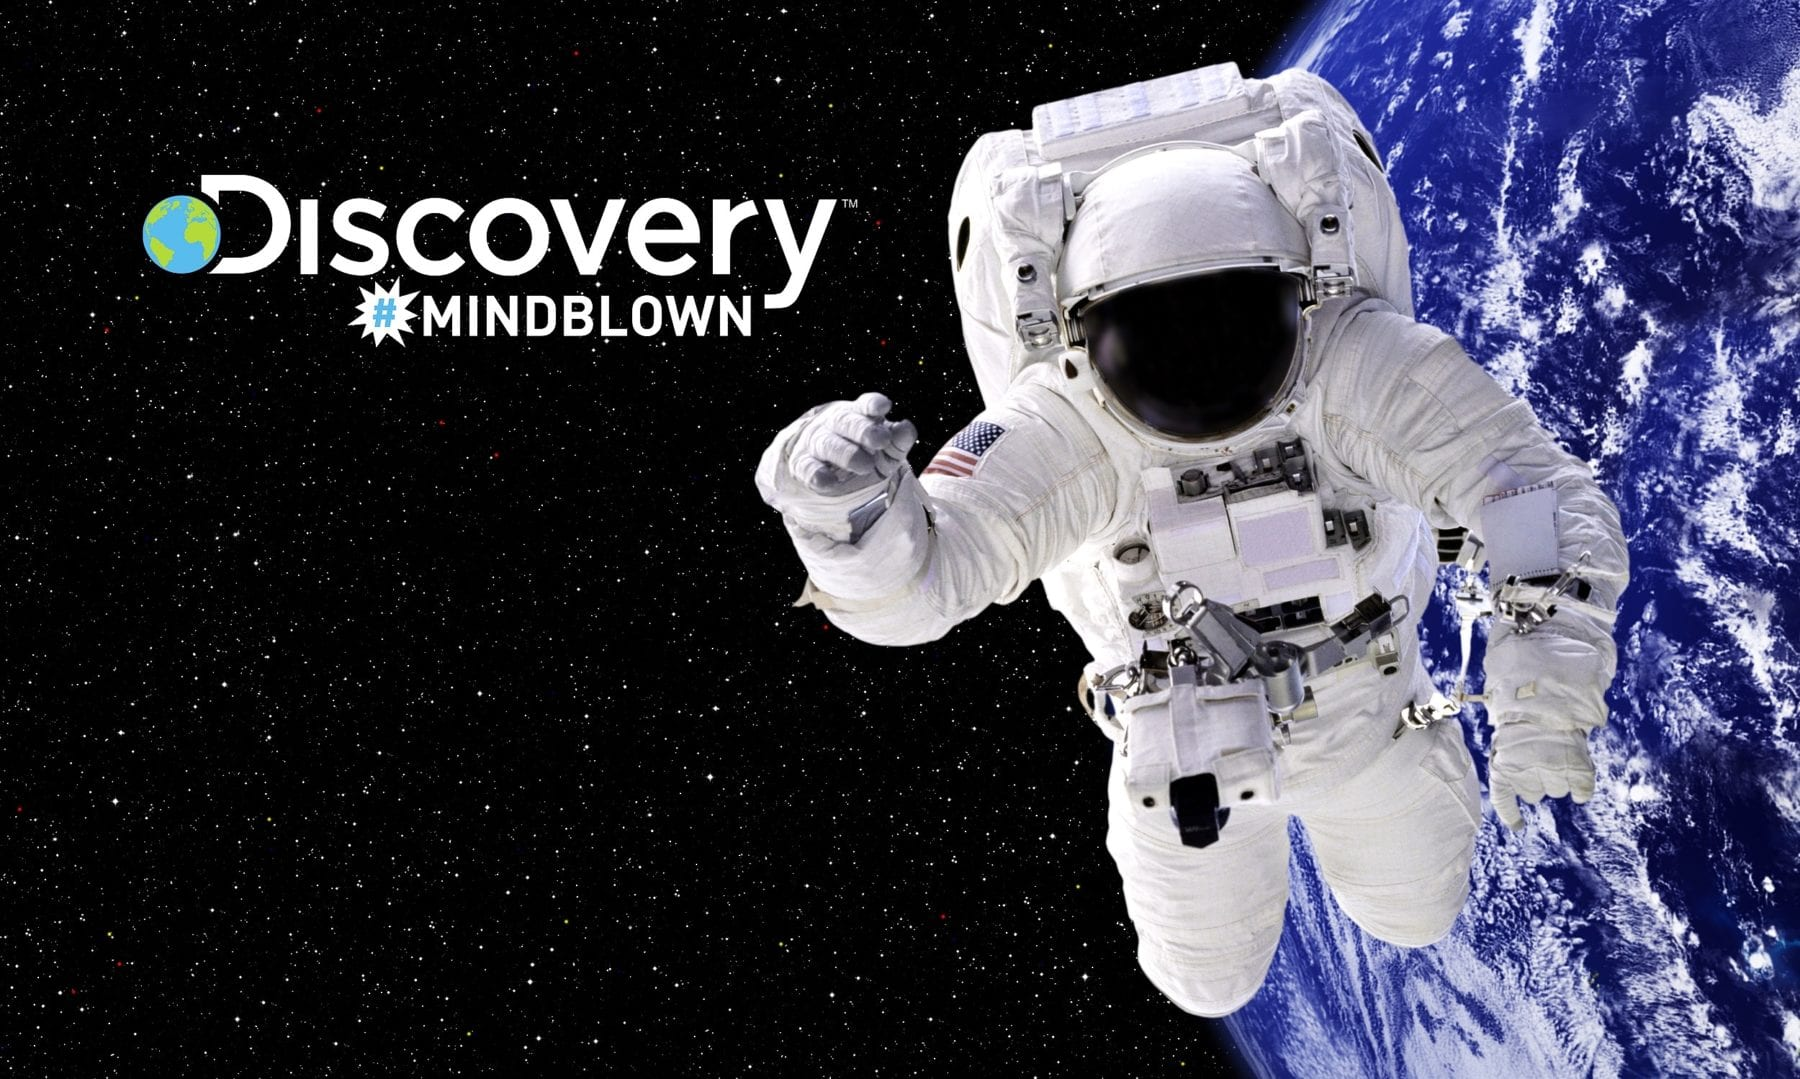 Explore your curiosity at discovery mindblown